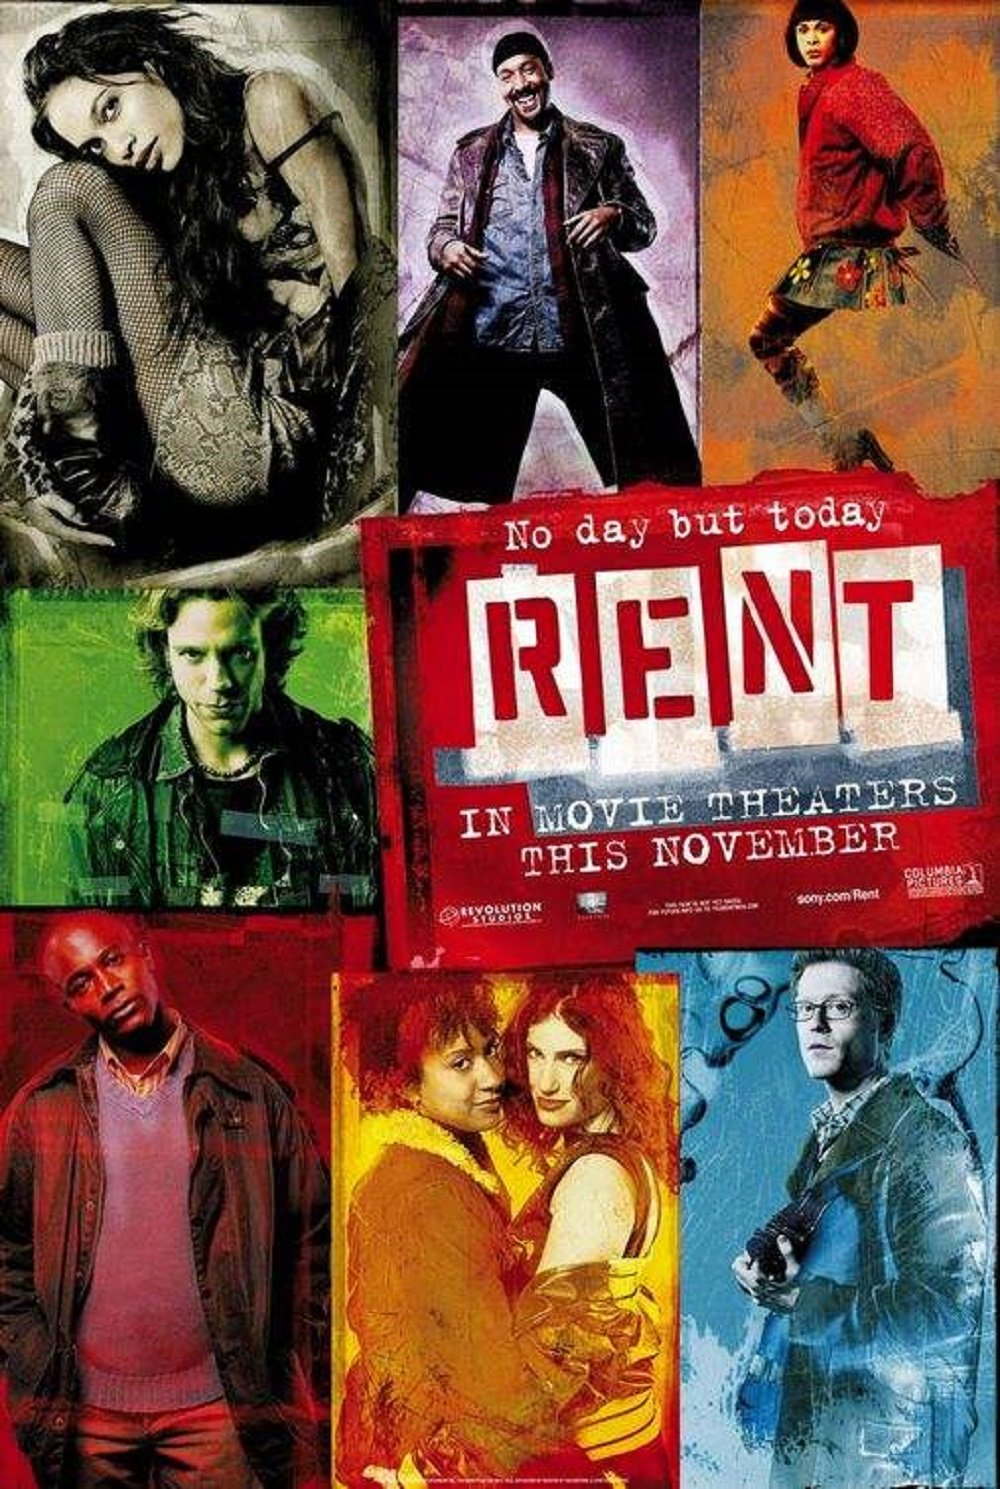 Rent 2005 D/S Rolled Movie Poster 27x40 i want to live movie poster susan hayward s oscar winning role 1958 lc 6